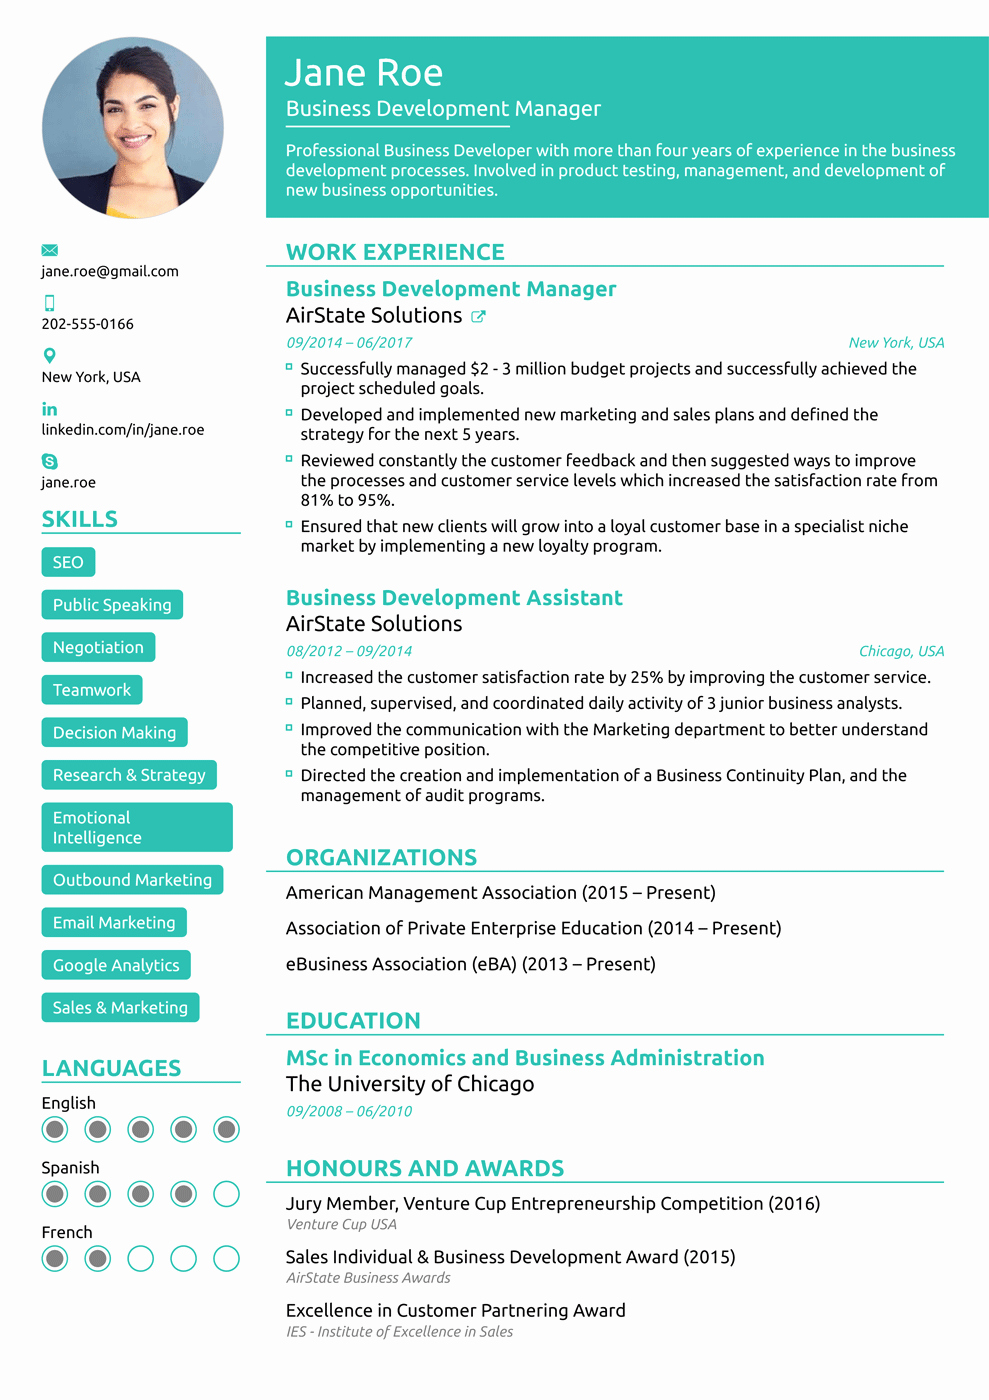 Free Functional Resume Template Fresh 2018 Professional Resume Templates as they Should Be [8 ]